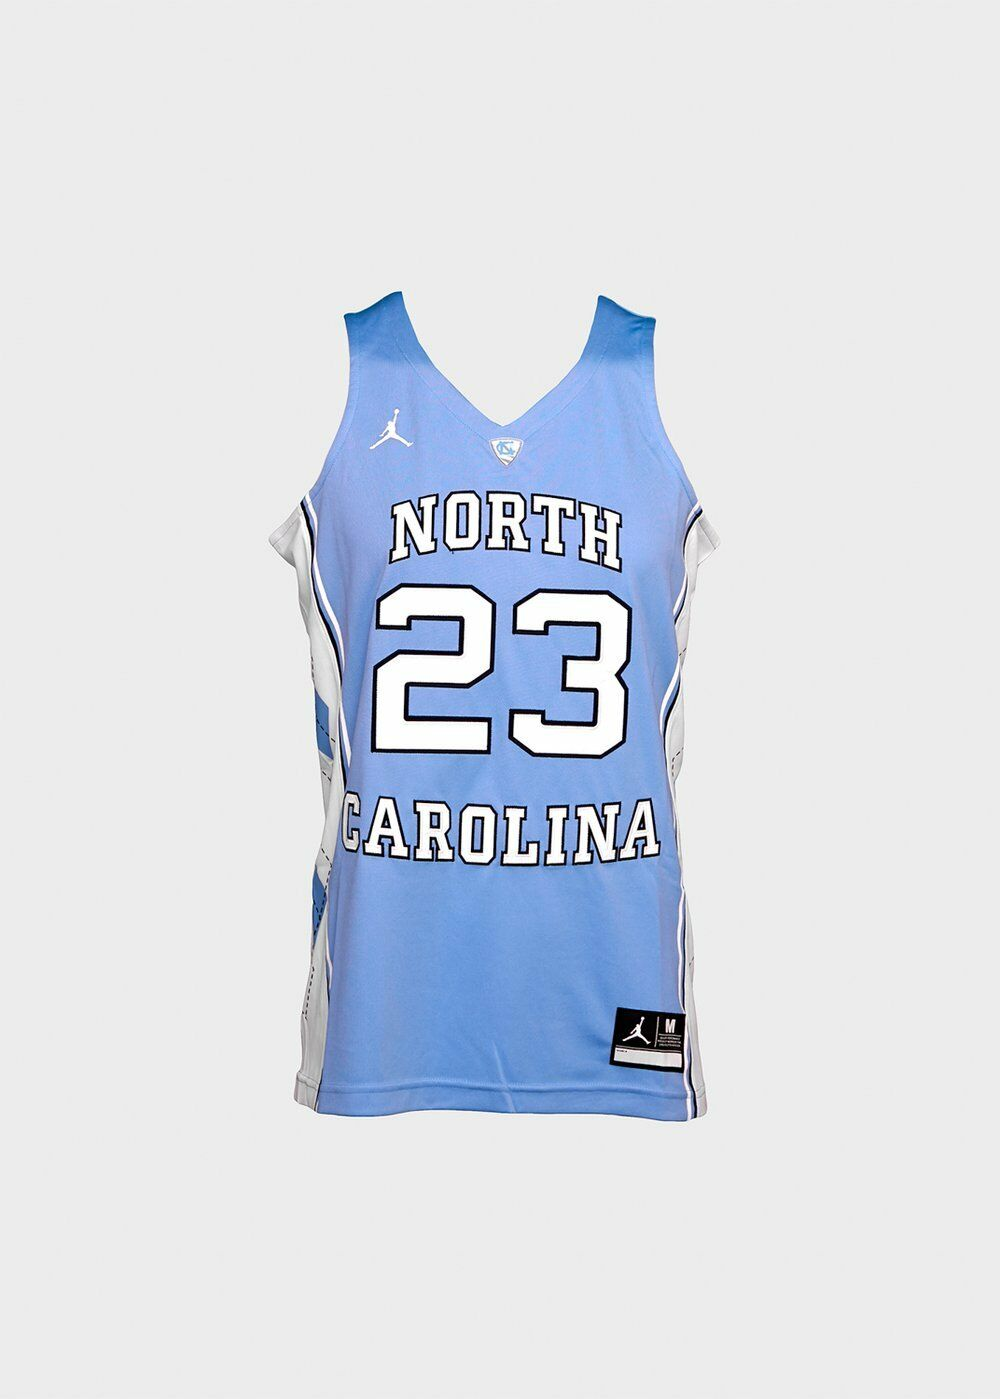 Mens UNC North Carolina Jordan Jersey Dri Fit Sleeveless Valor bluee 00036590X23R